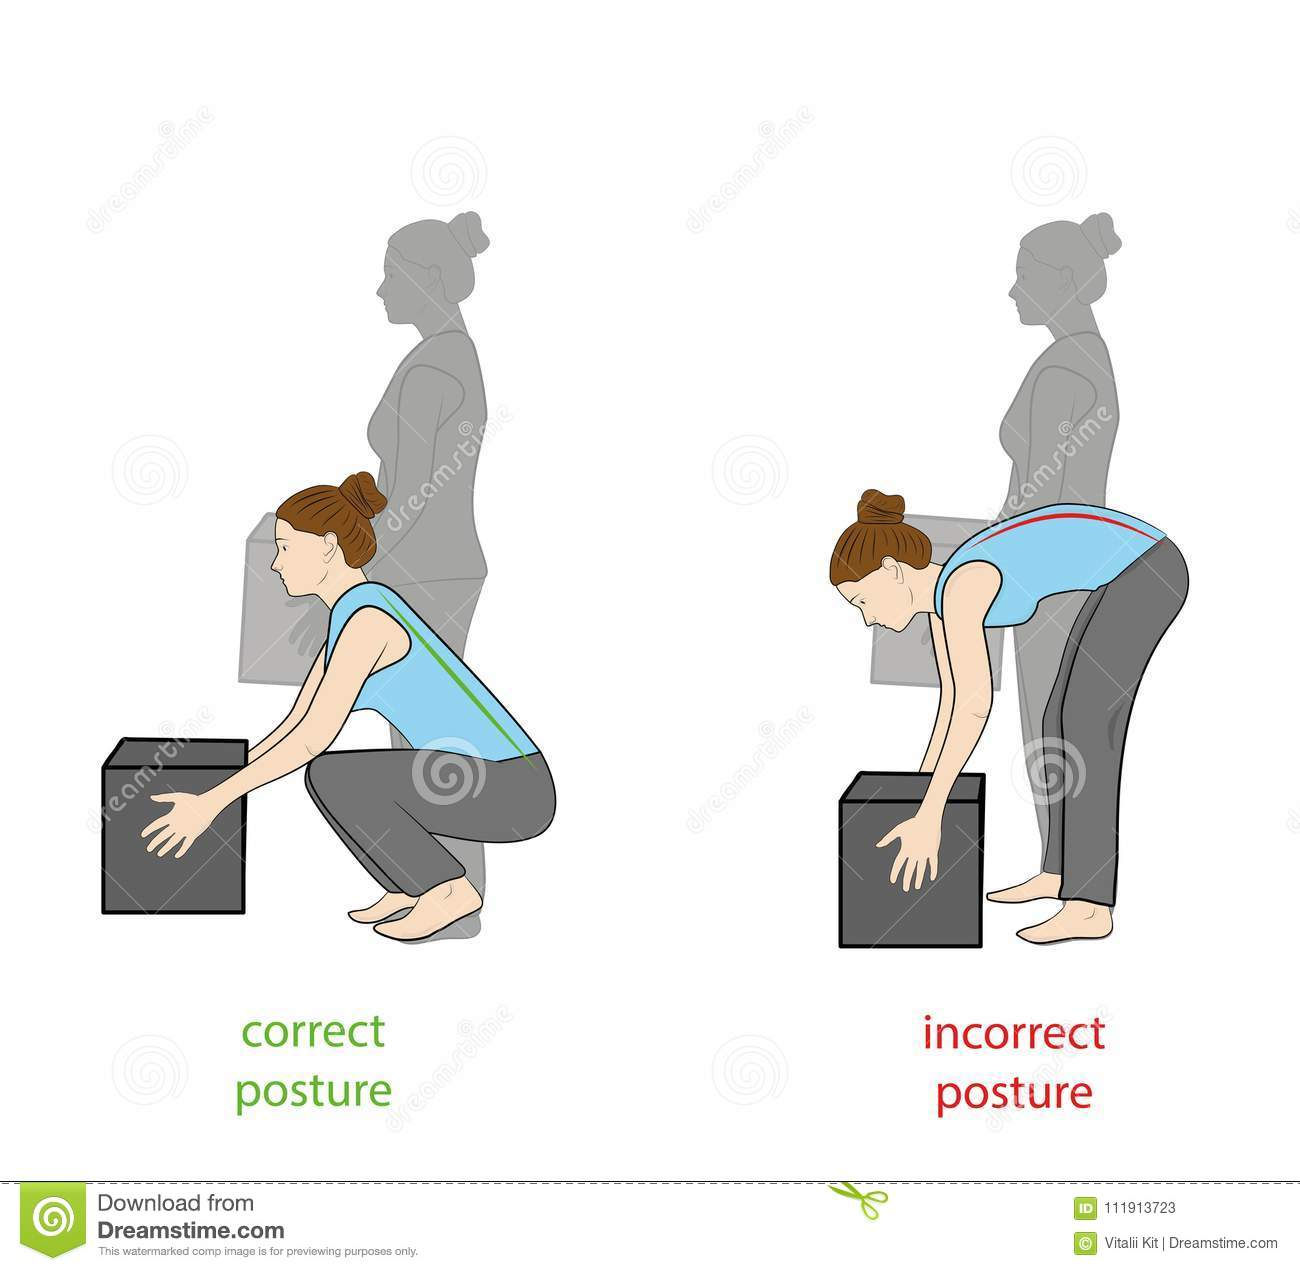 Correct Posture To Lift A Heavy Object Safely Illustration Of